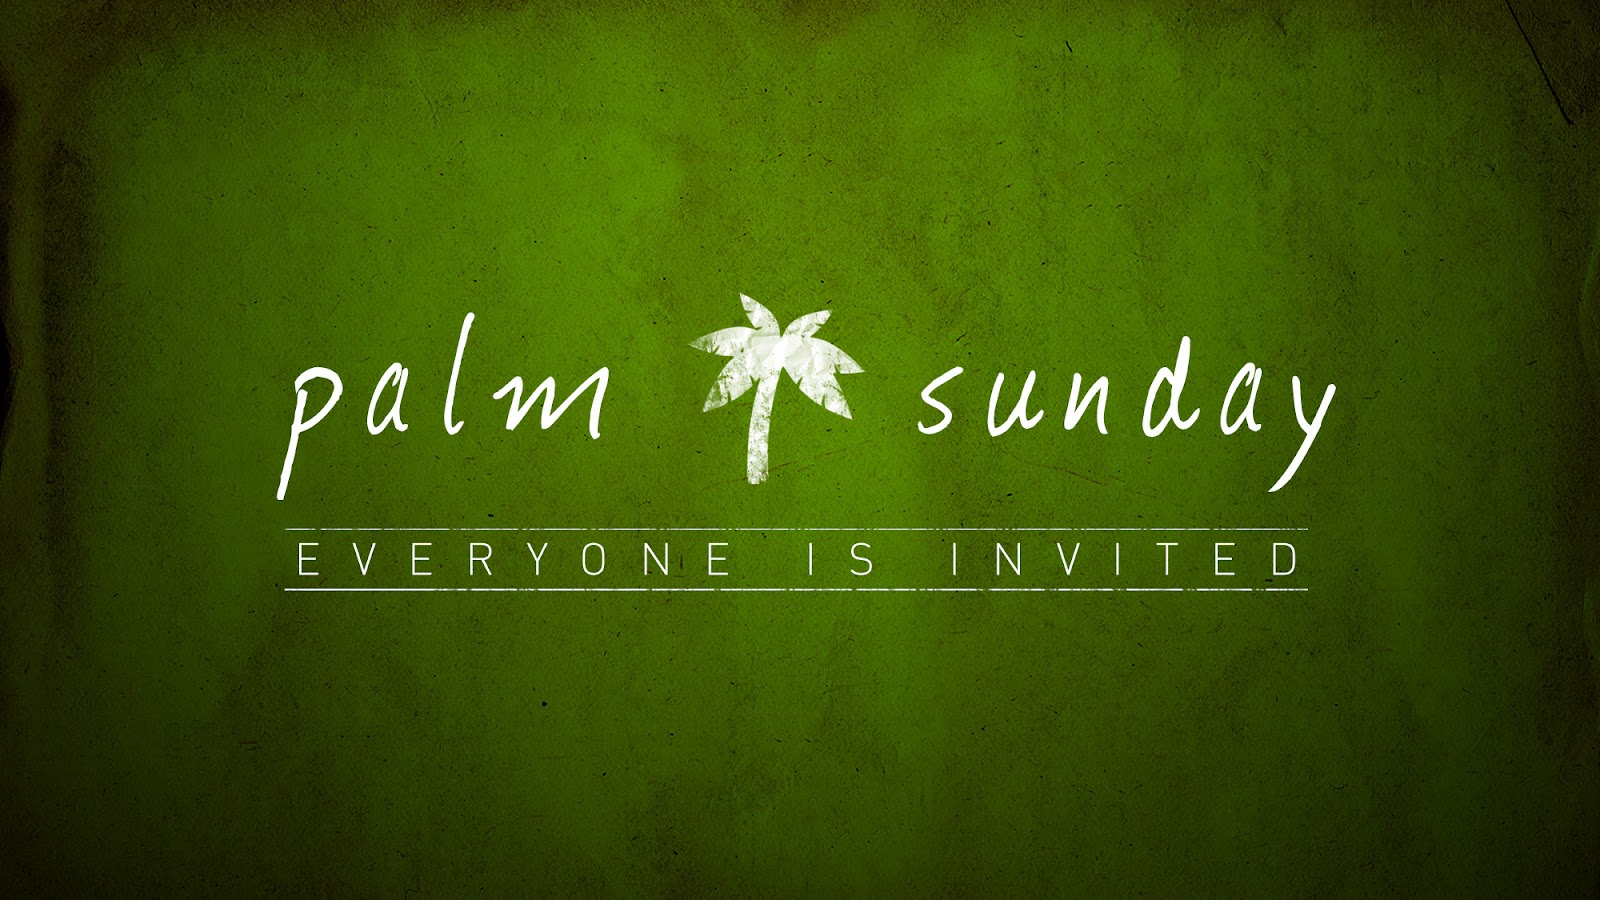 Palm Sunday Greetings Wallpapers